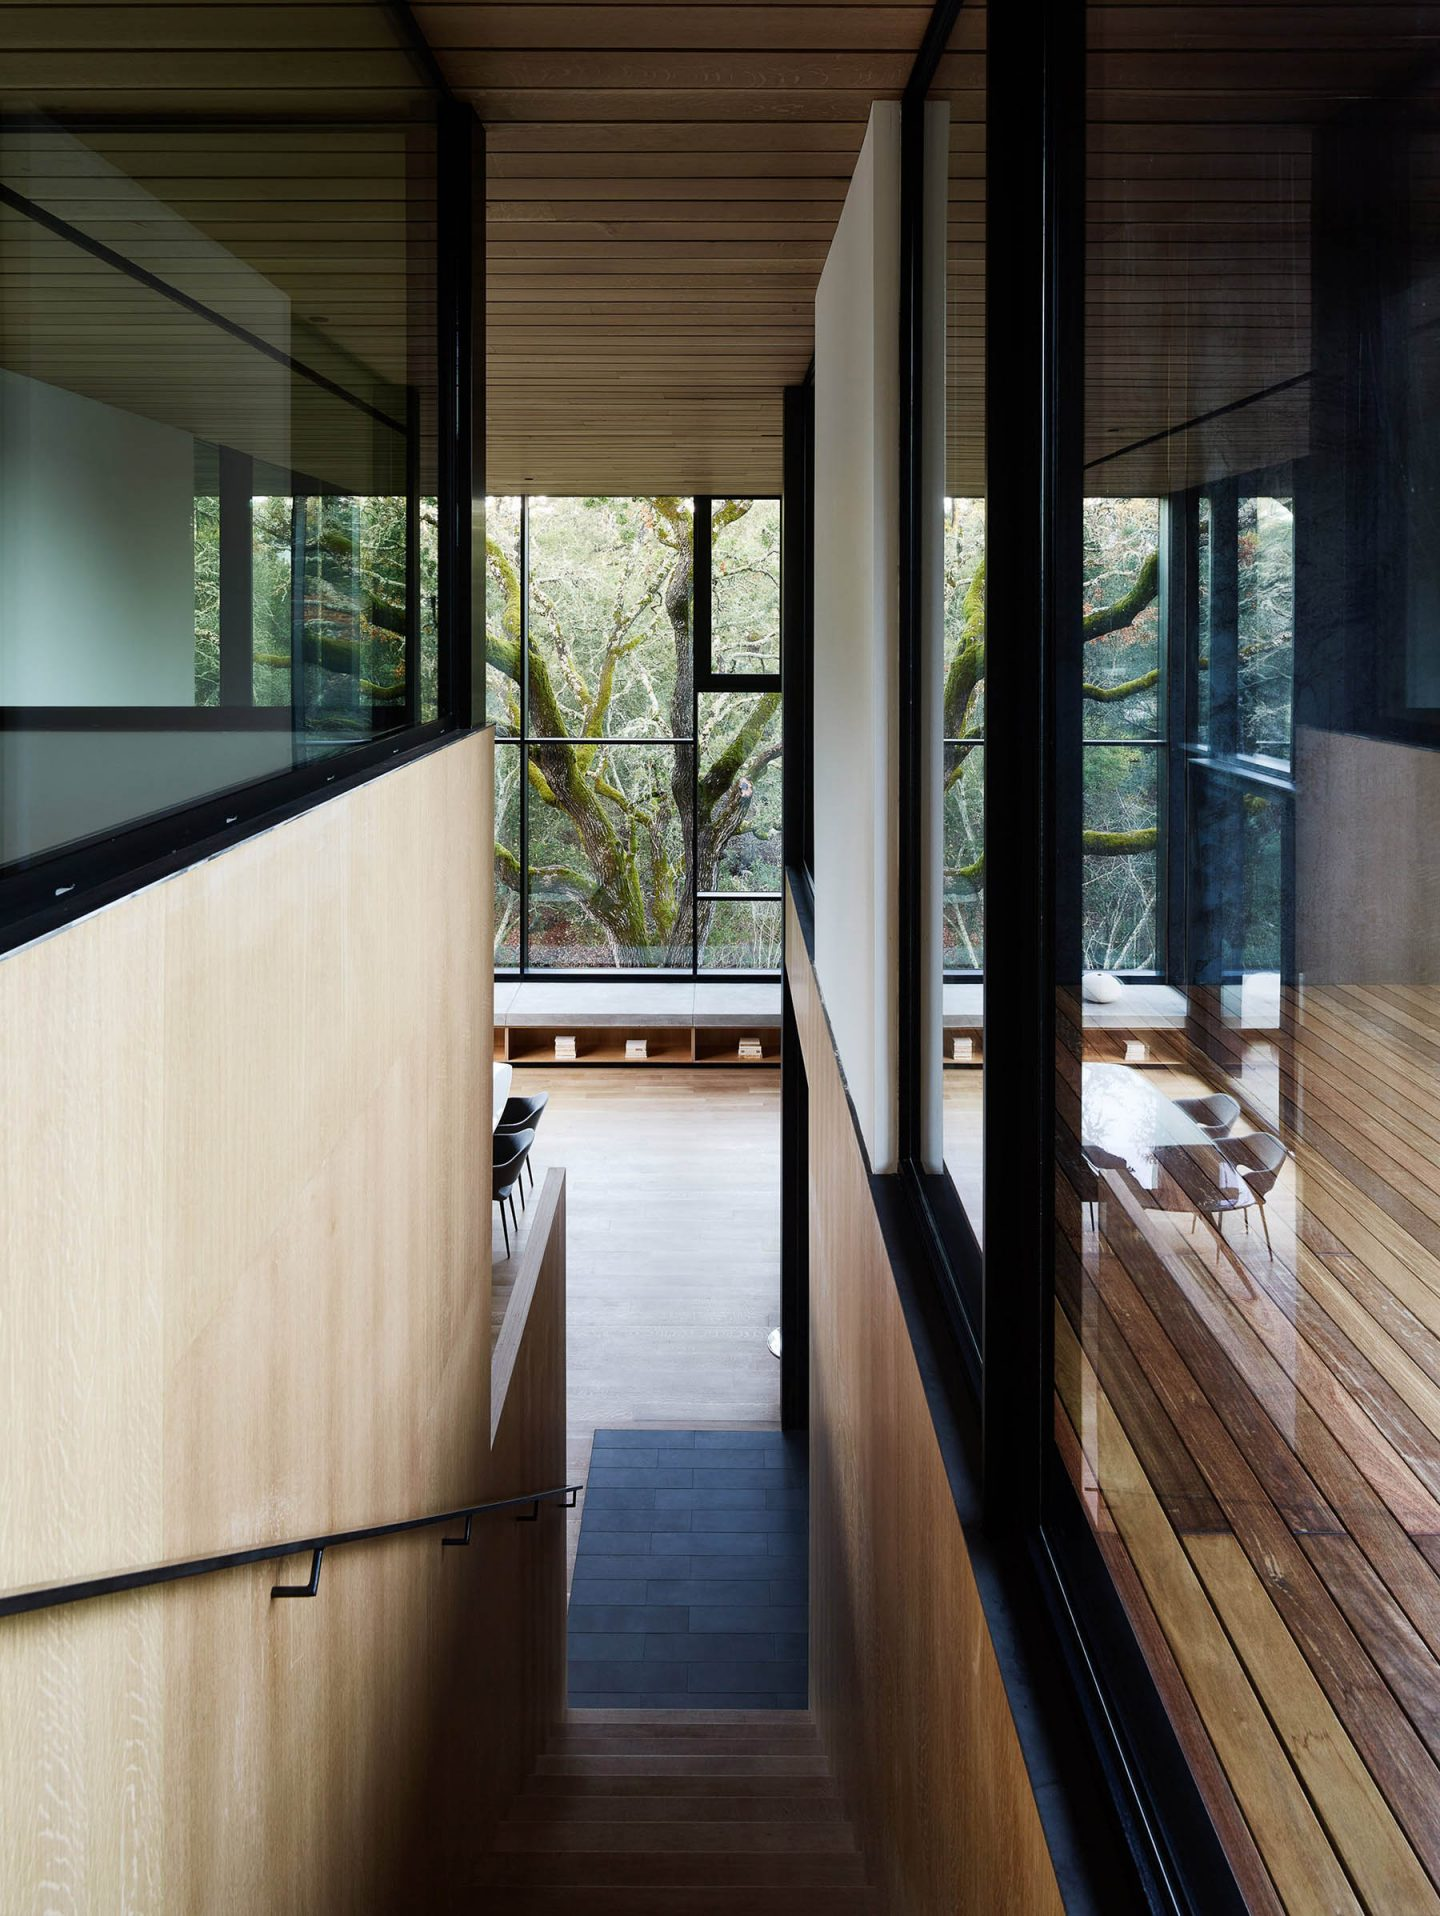 iGNANT-Architecture-Faulker-Architects-Weathering-Steel-Home-016